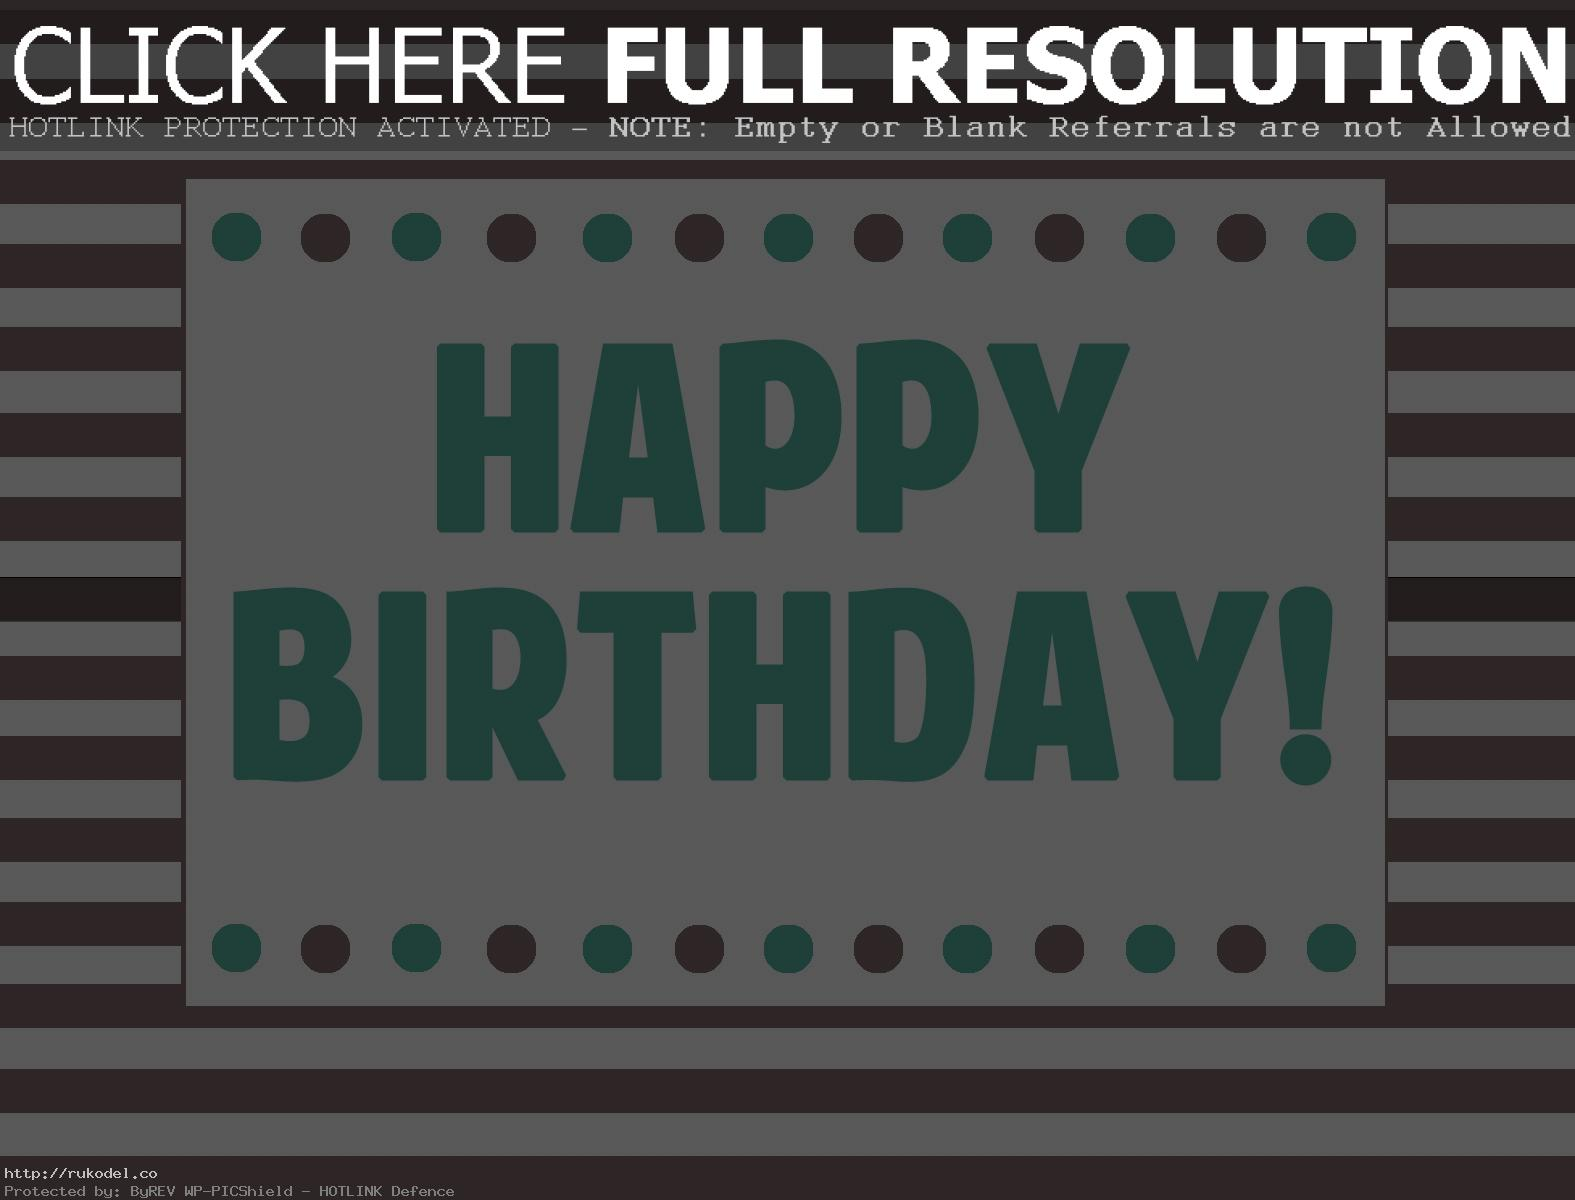 happy birthday sign template ; happy-birthday-images-printable-new-sign-clip-art-library-with